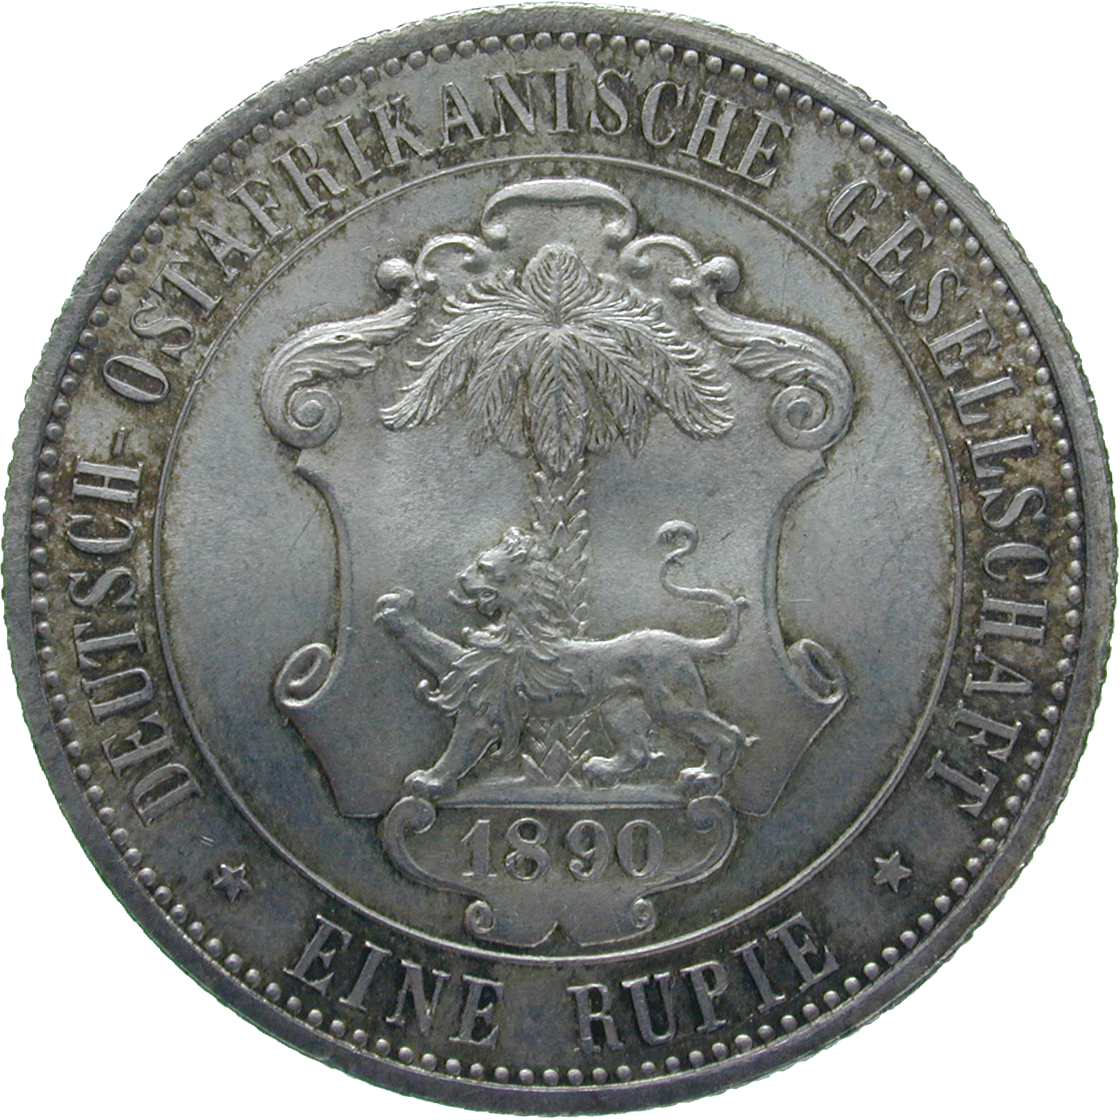 German Empire for German East Africa, Wilhelm II, 1 Rupee 1890 (reverse)